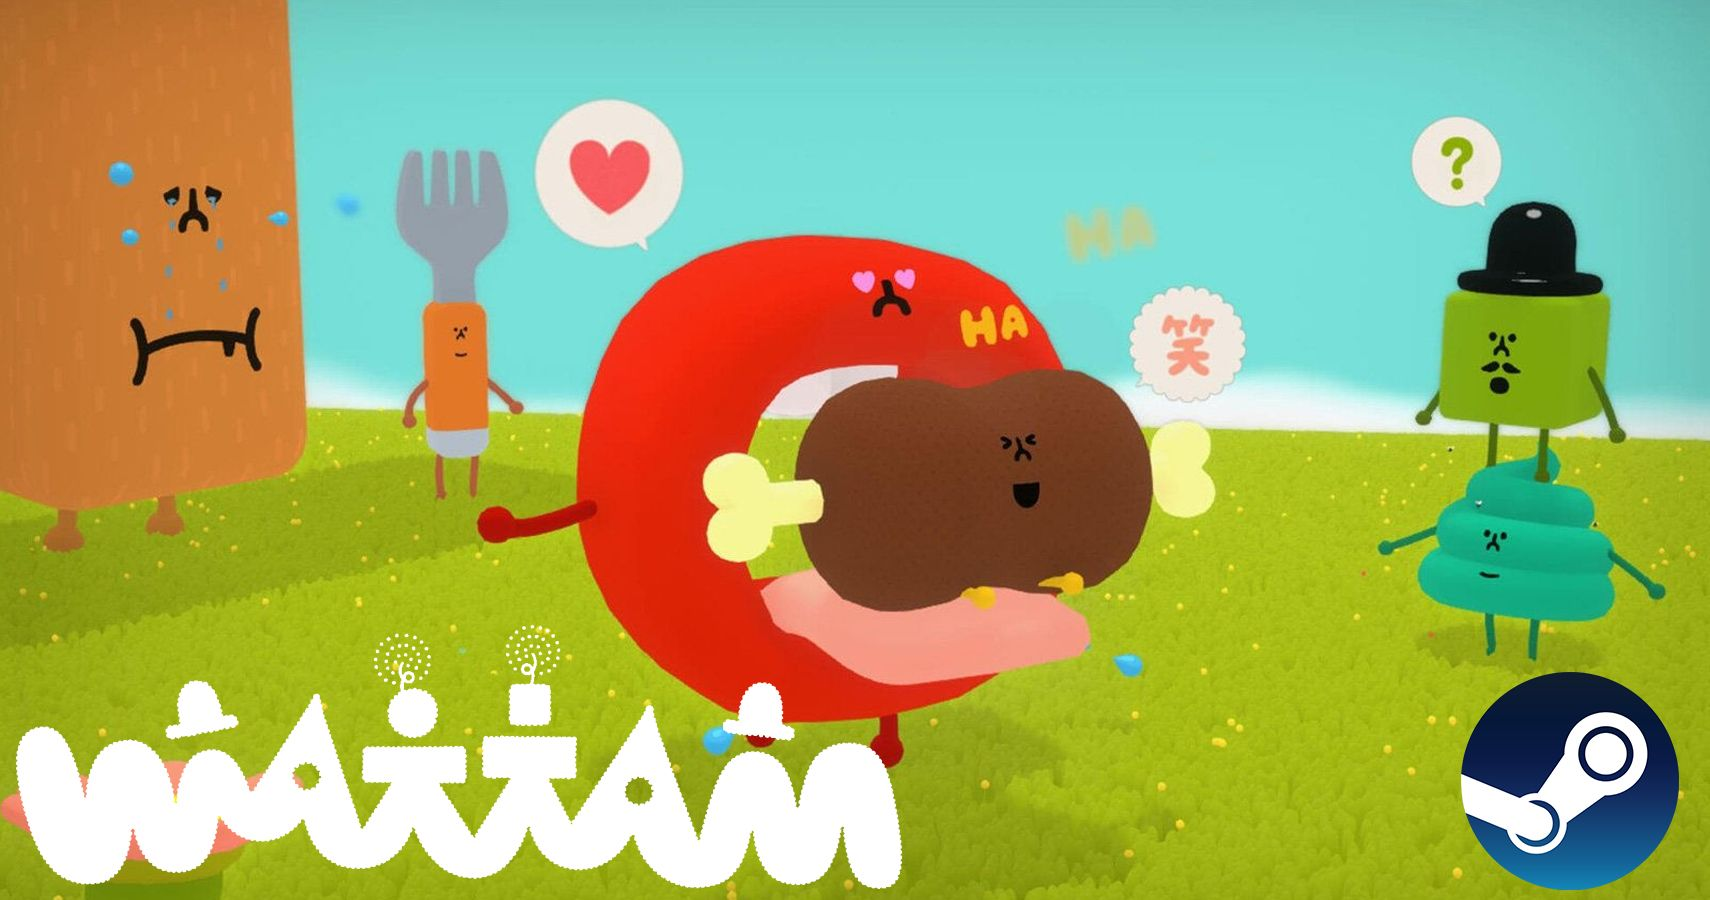 Wattam, The Latest Game From Katamari Damacy's Creator, Comes To Steam On December 18